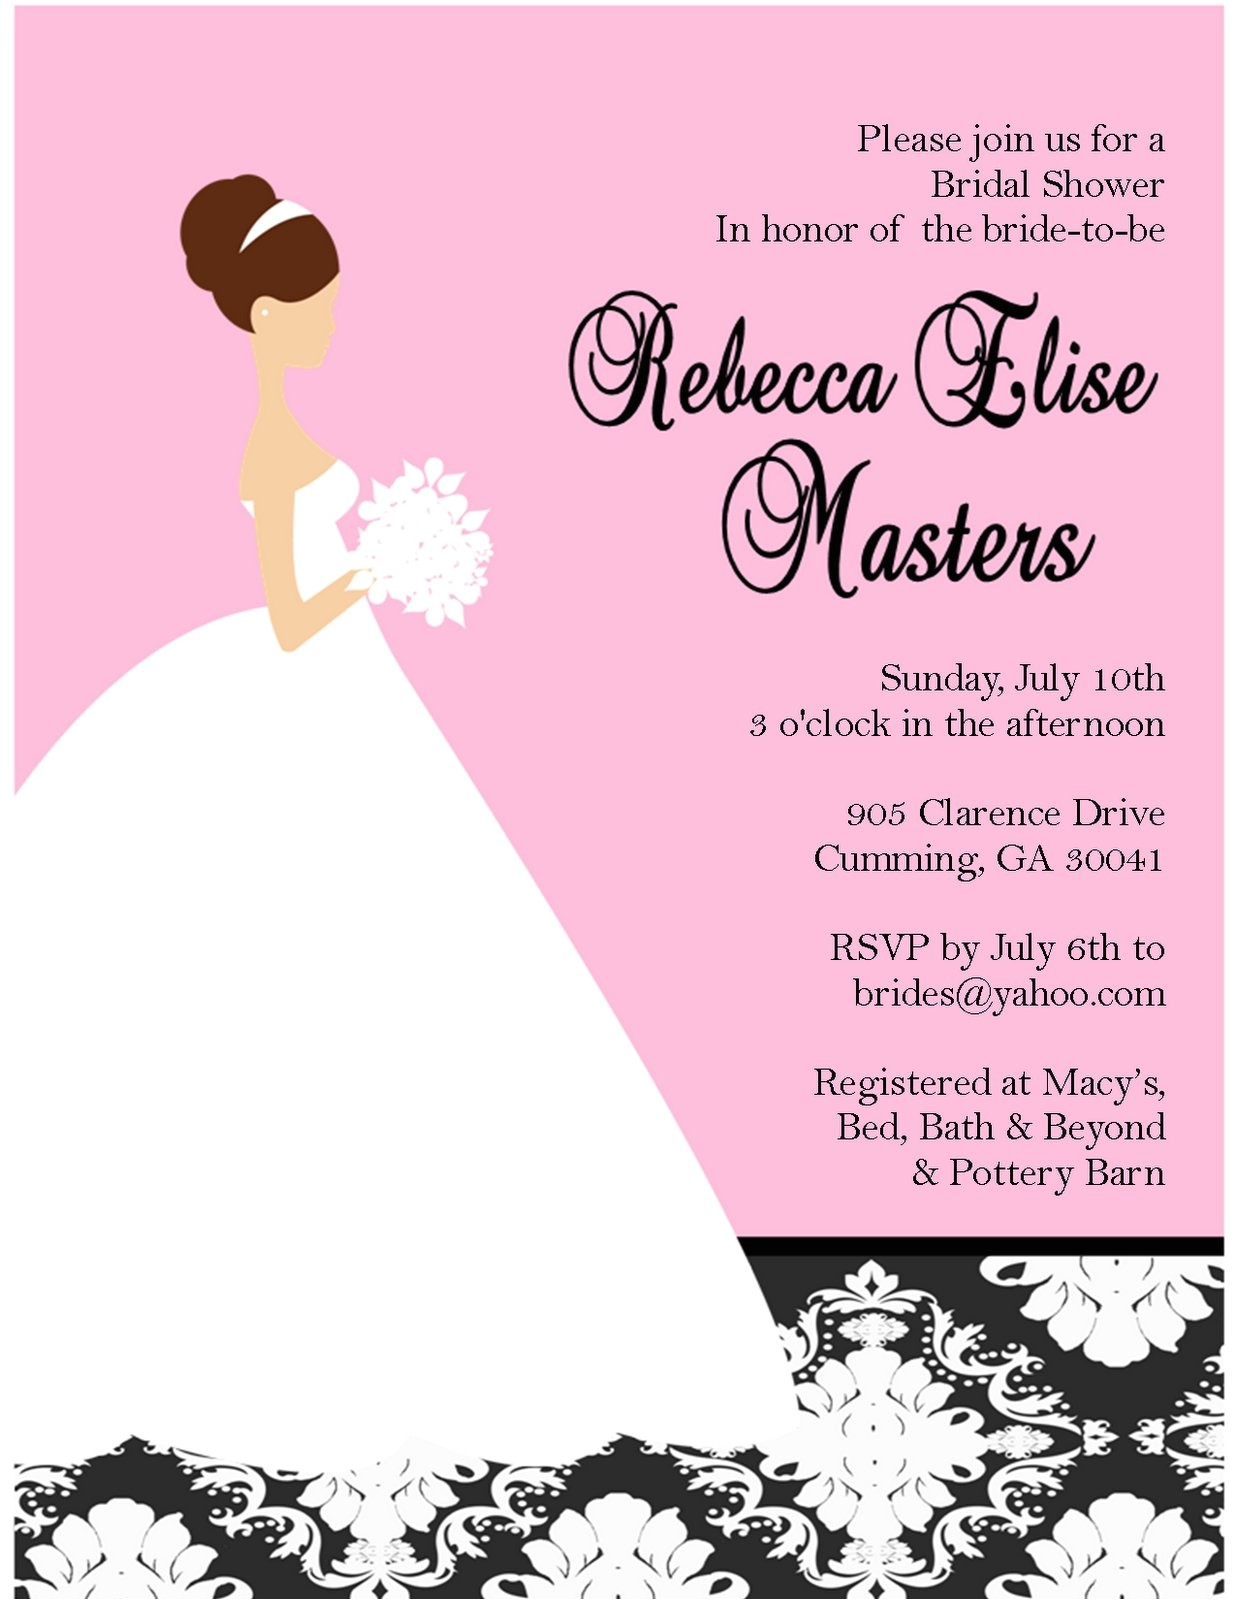 Bride to Be Bridal Shower Invitations Bridal Shower Invitations Custom Bridal Shower